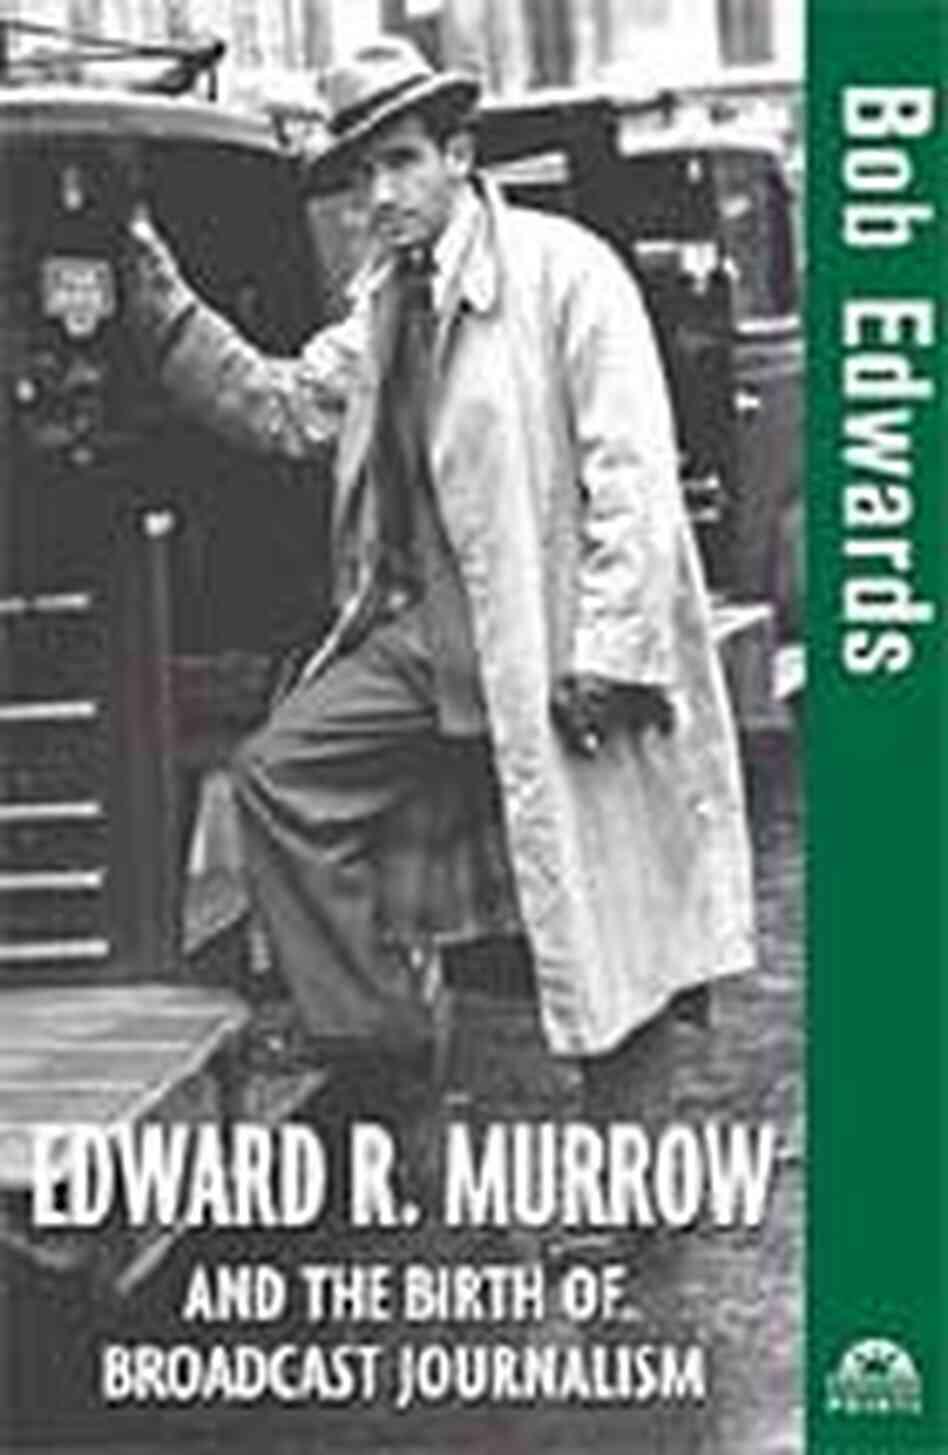 'Edward R. Murrow and the Birth of Broadcast Journalism'